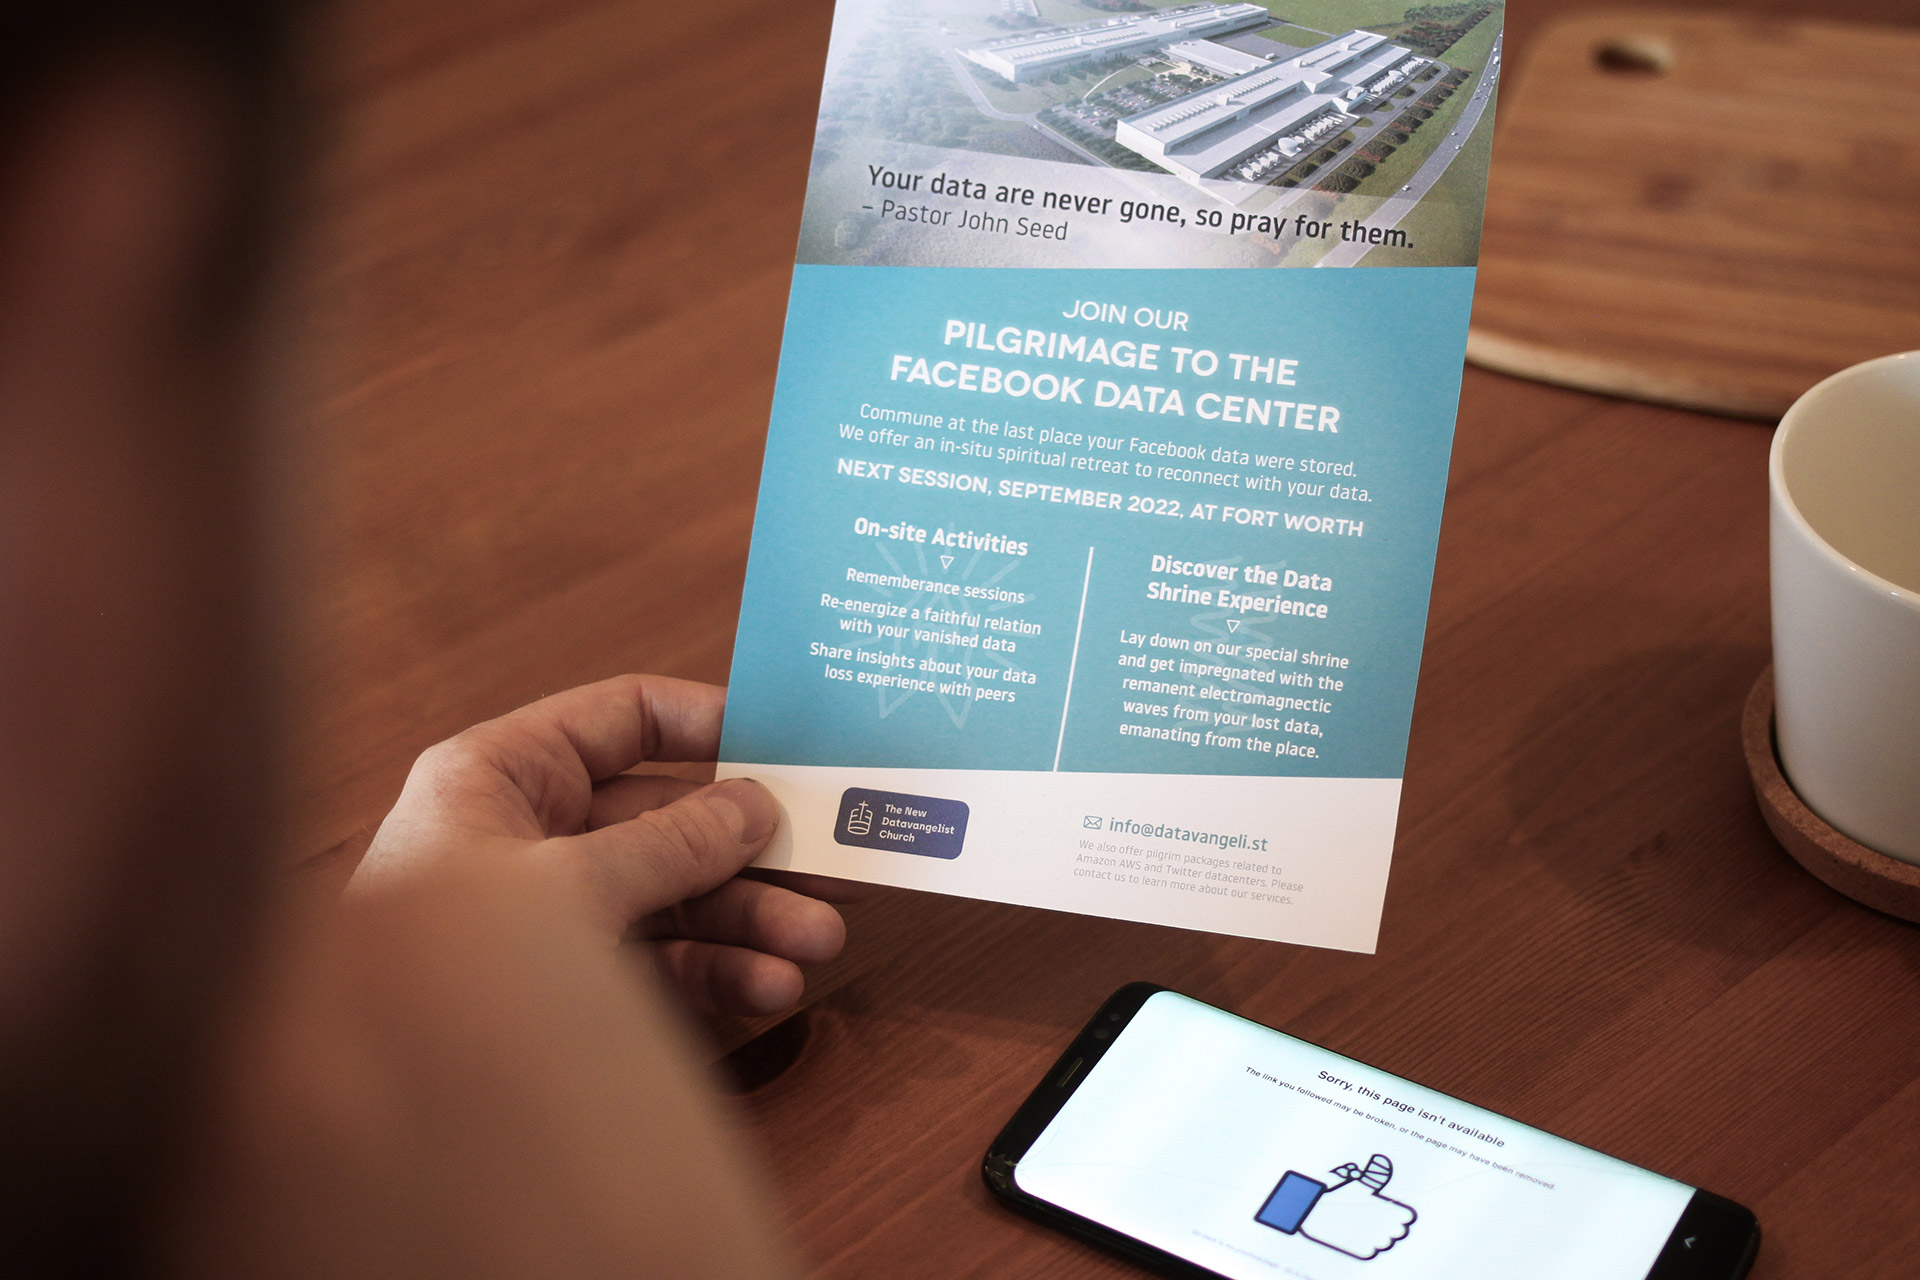 A flyer from the Datavangelist Chruch for a pilgrimage to Facebook data center